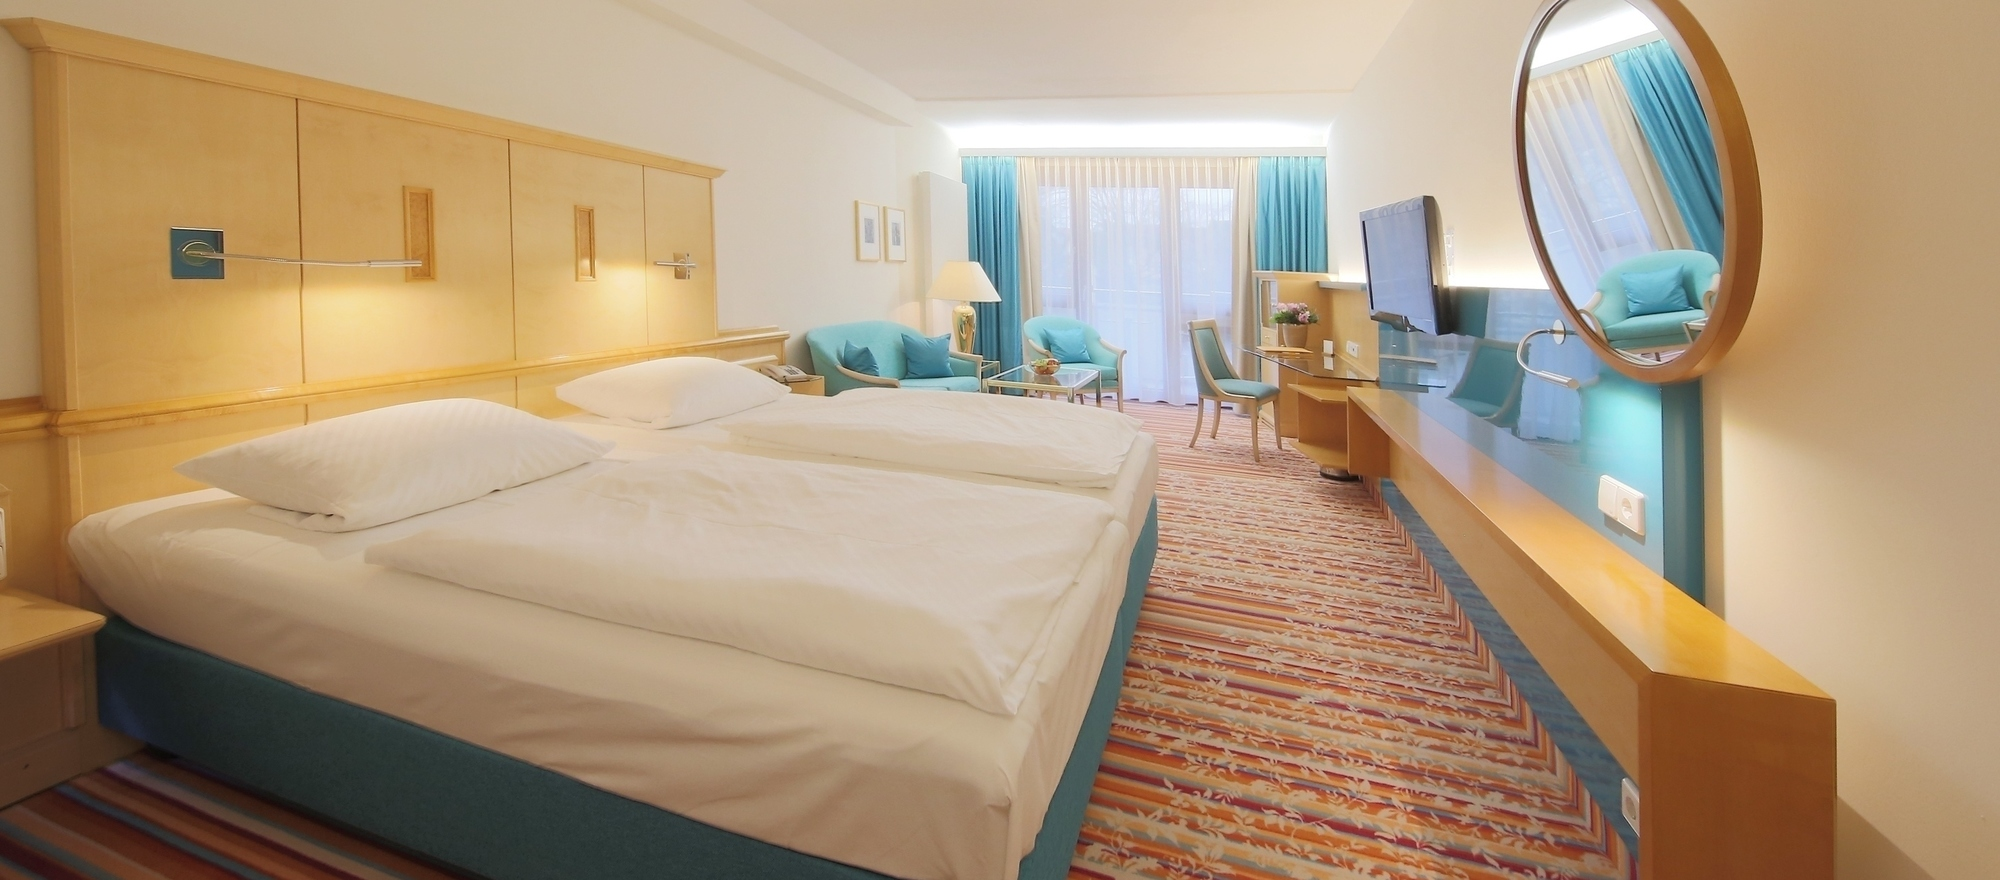 Double room in the Ringhotel Hohenlohe in Schwaebisch Hall, 4 stars superior hotel in the Heilbronner Land region